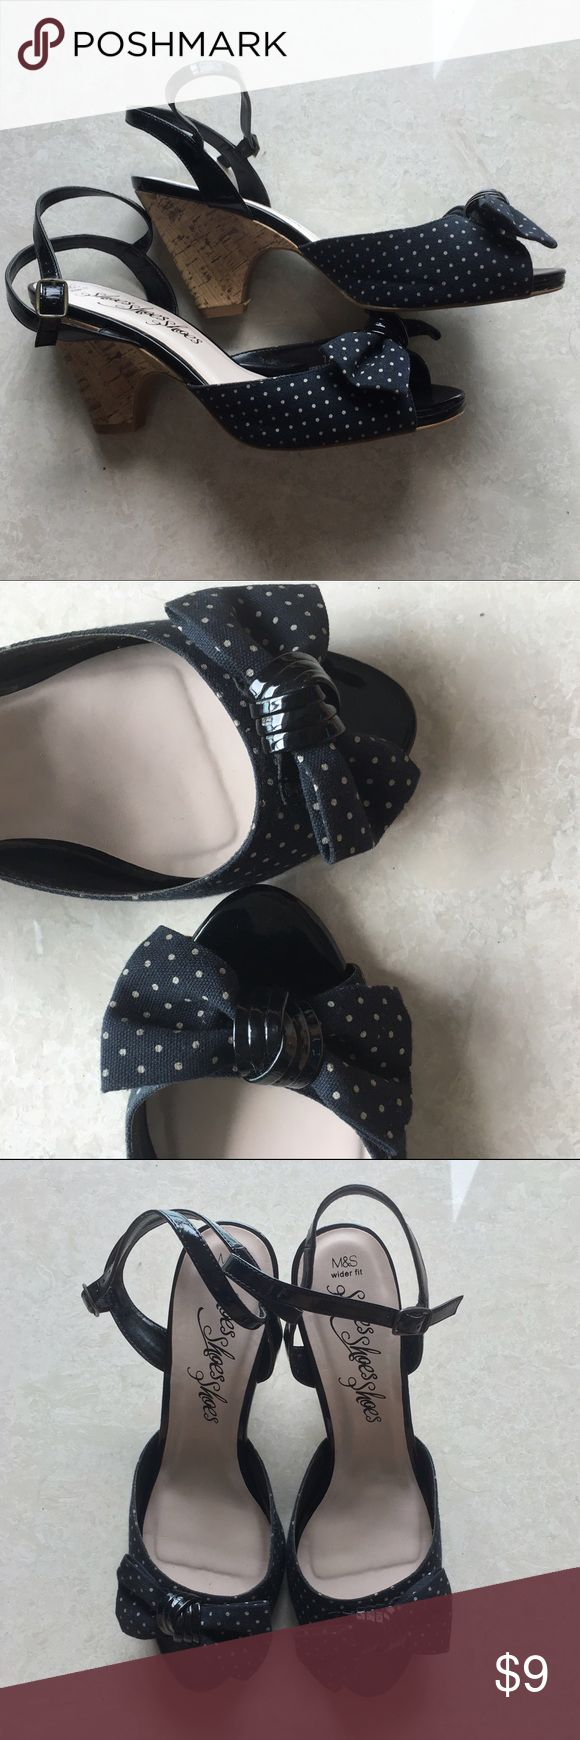 Marks & Spencer Polka Dotted Heels Extremely cute and great for any occasion. Small heels that are great for a casual outfit. UK 7.5 = US 9.5 Marks & Spencer Shoes Heels